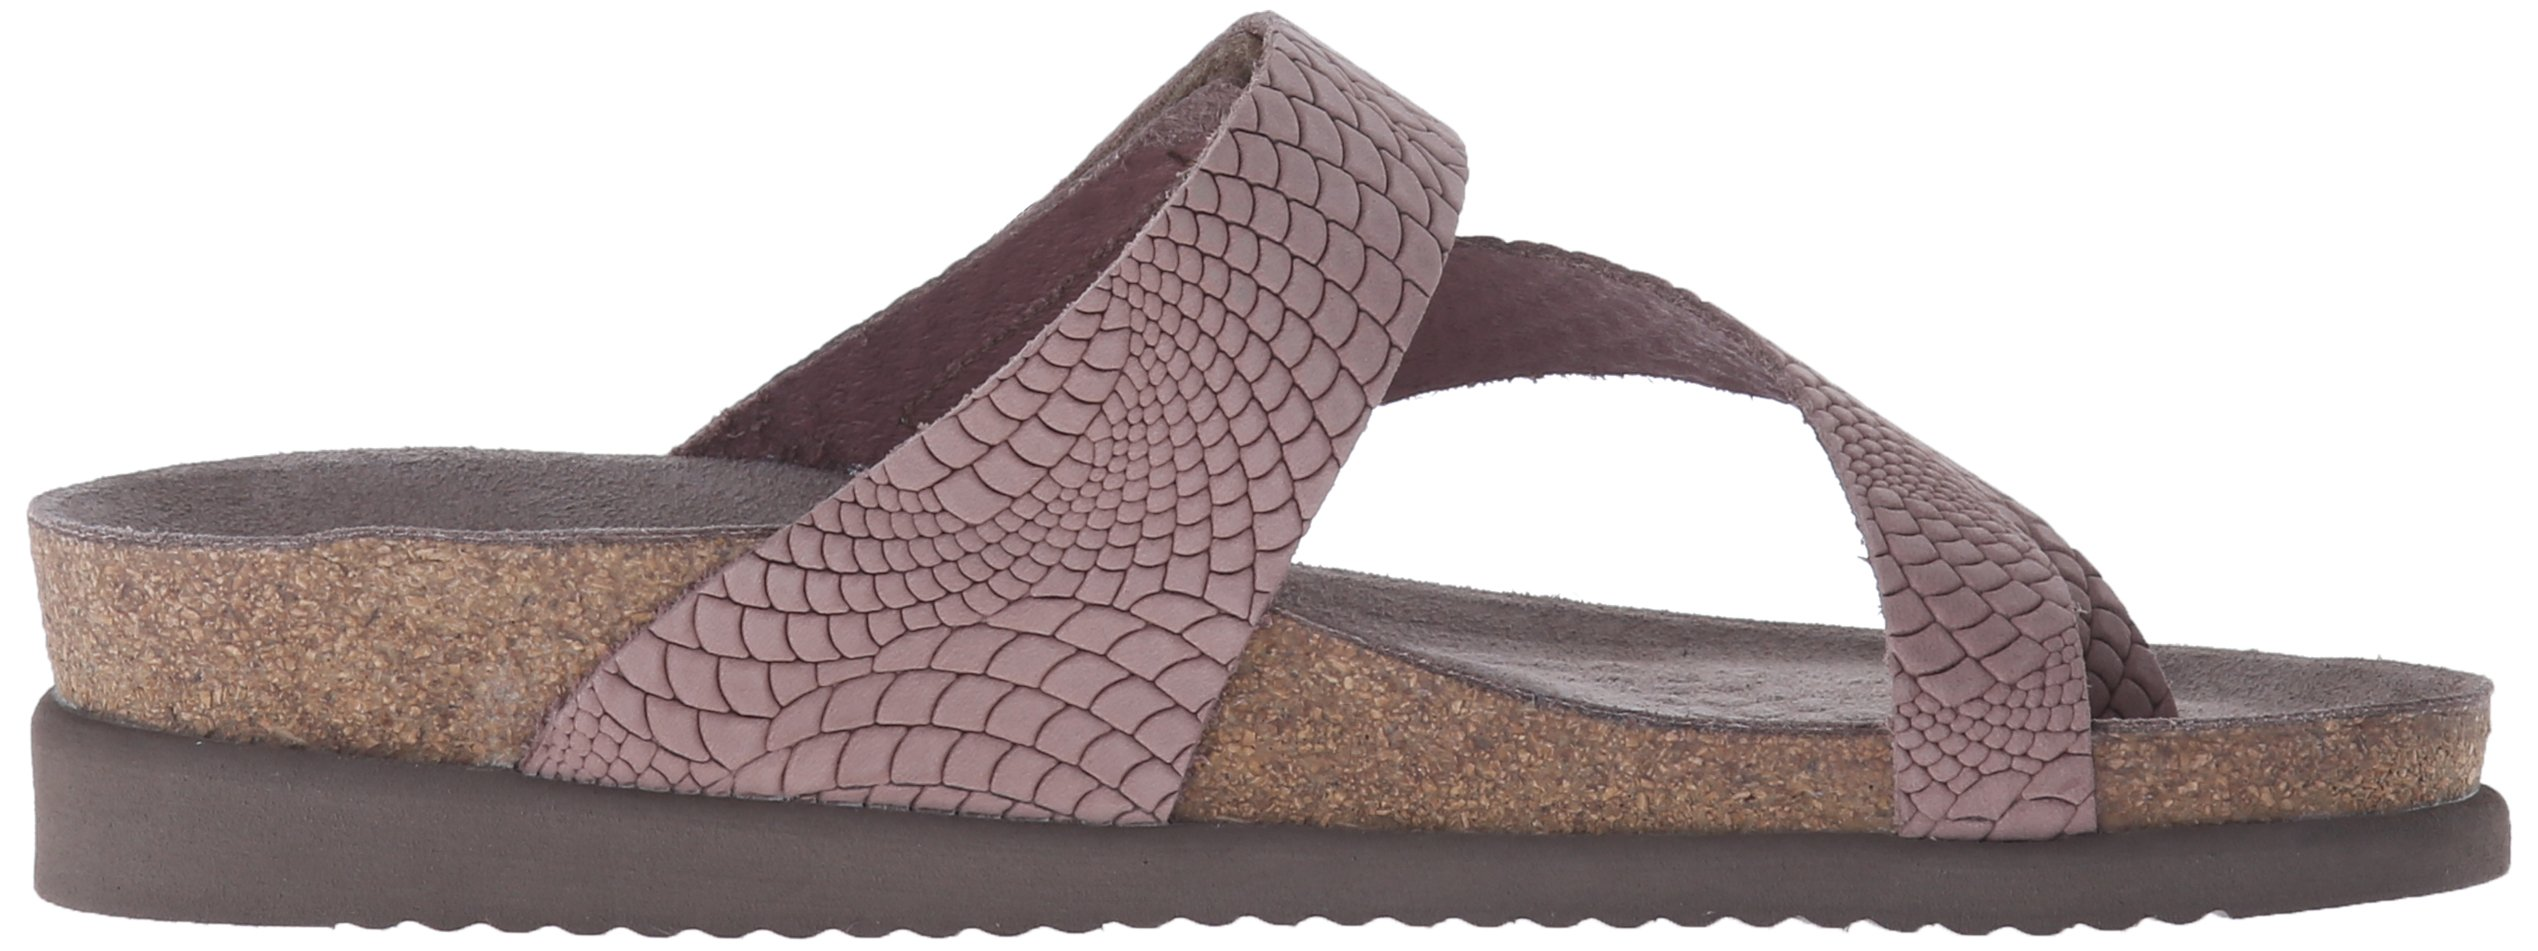 Mephisto Women's Halice Flip Flop, Old Pink Rio, 9 M US by Mephisto (Image #7)